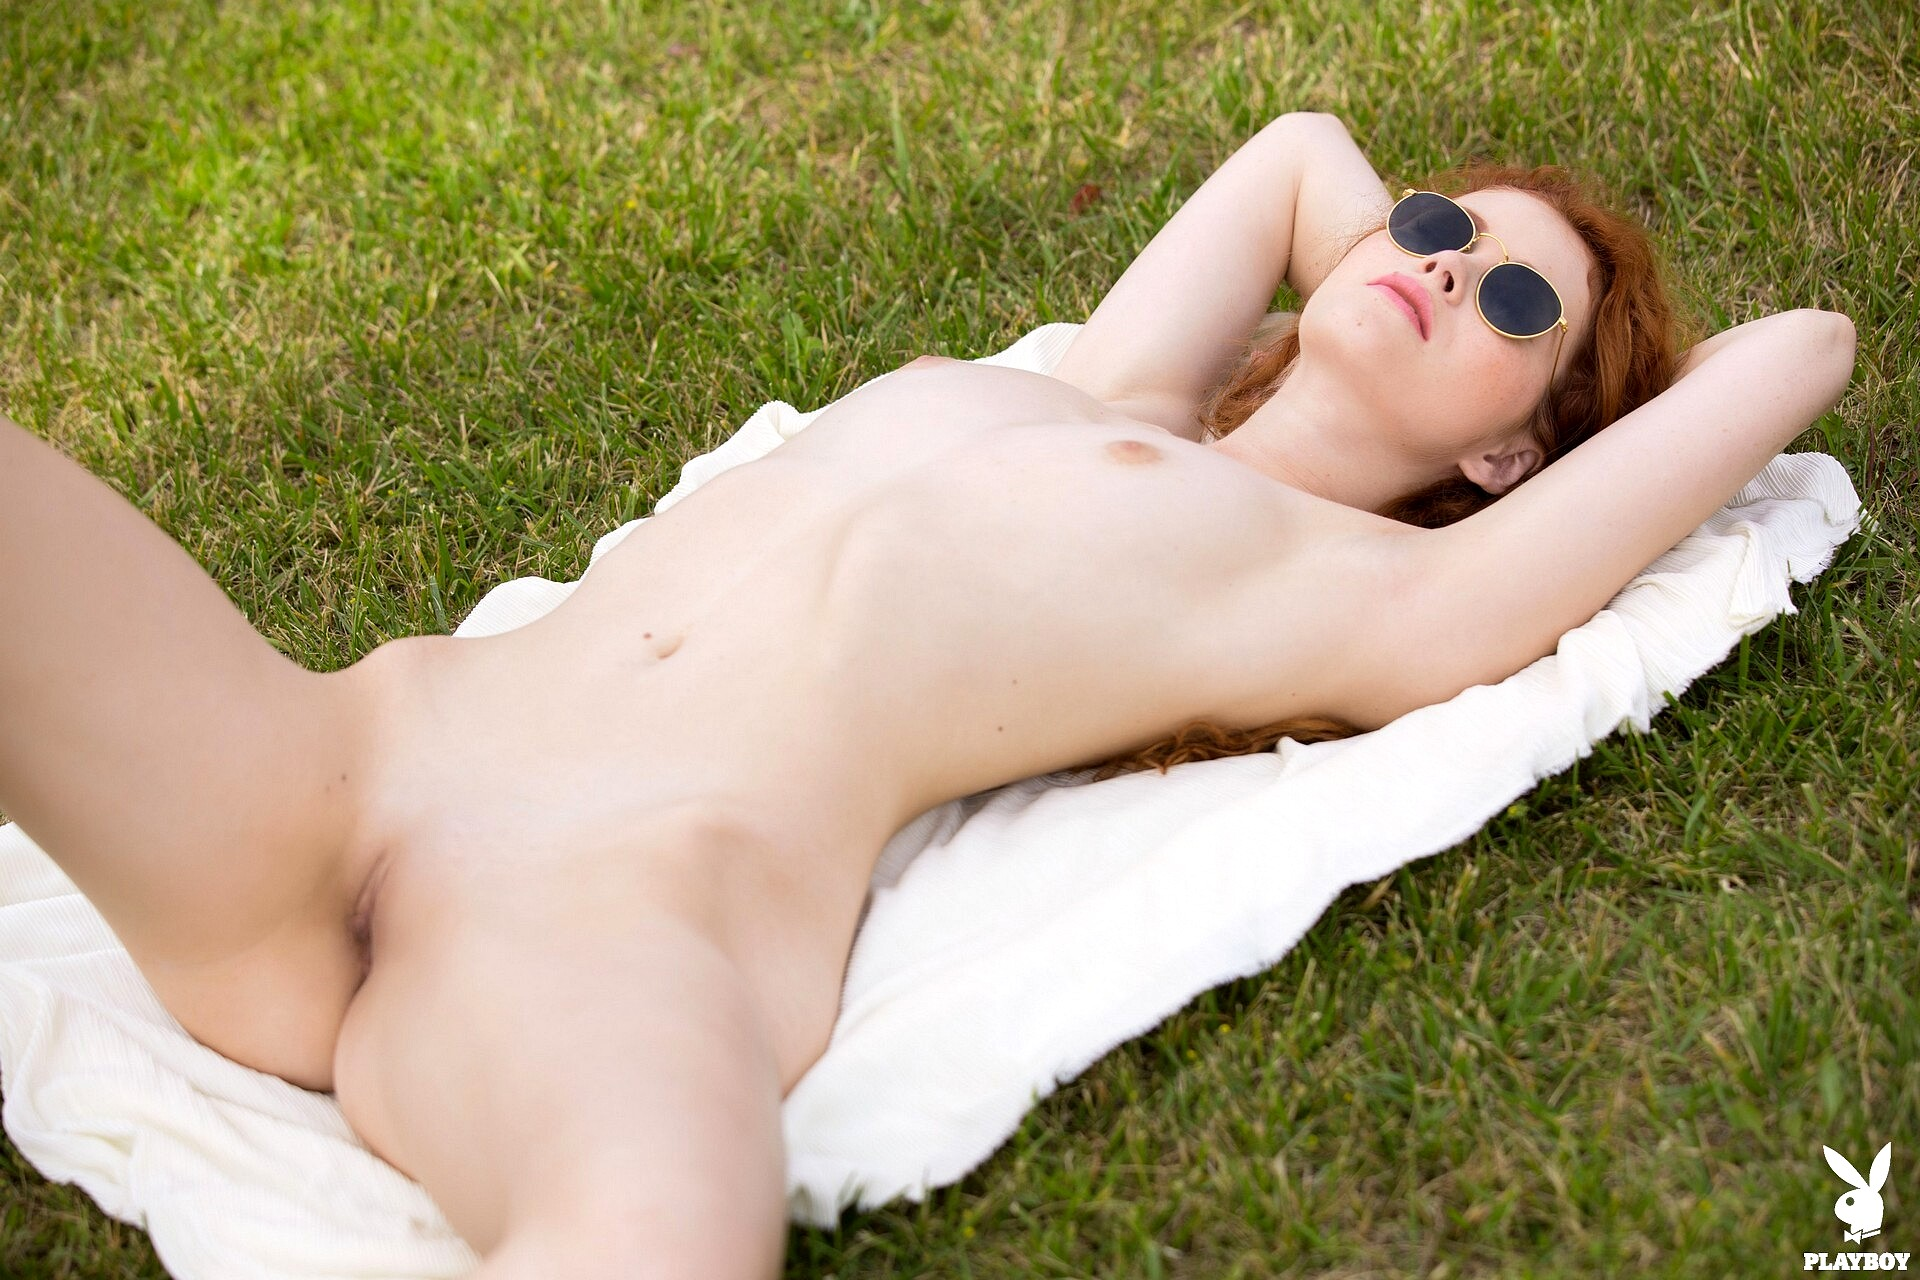 Suzanne Collins Nude Photos Leaked Pics